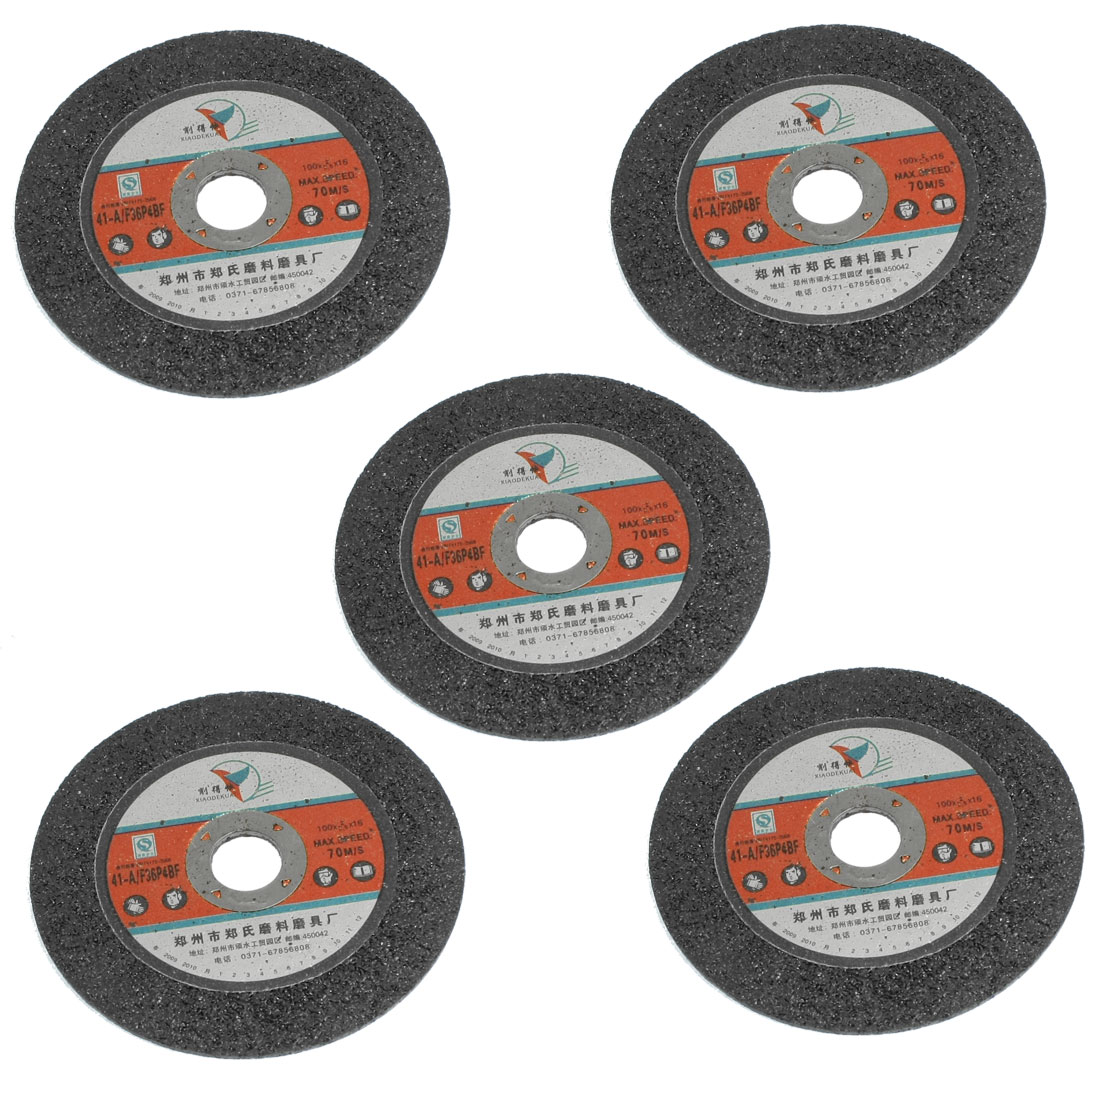 16mm Inner Diameter Disc Abrasive Grinding Wheel Slice Cutting Tool 5 Pcs